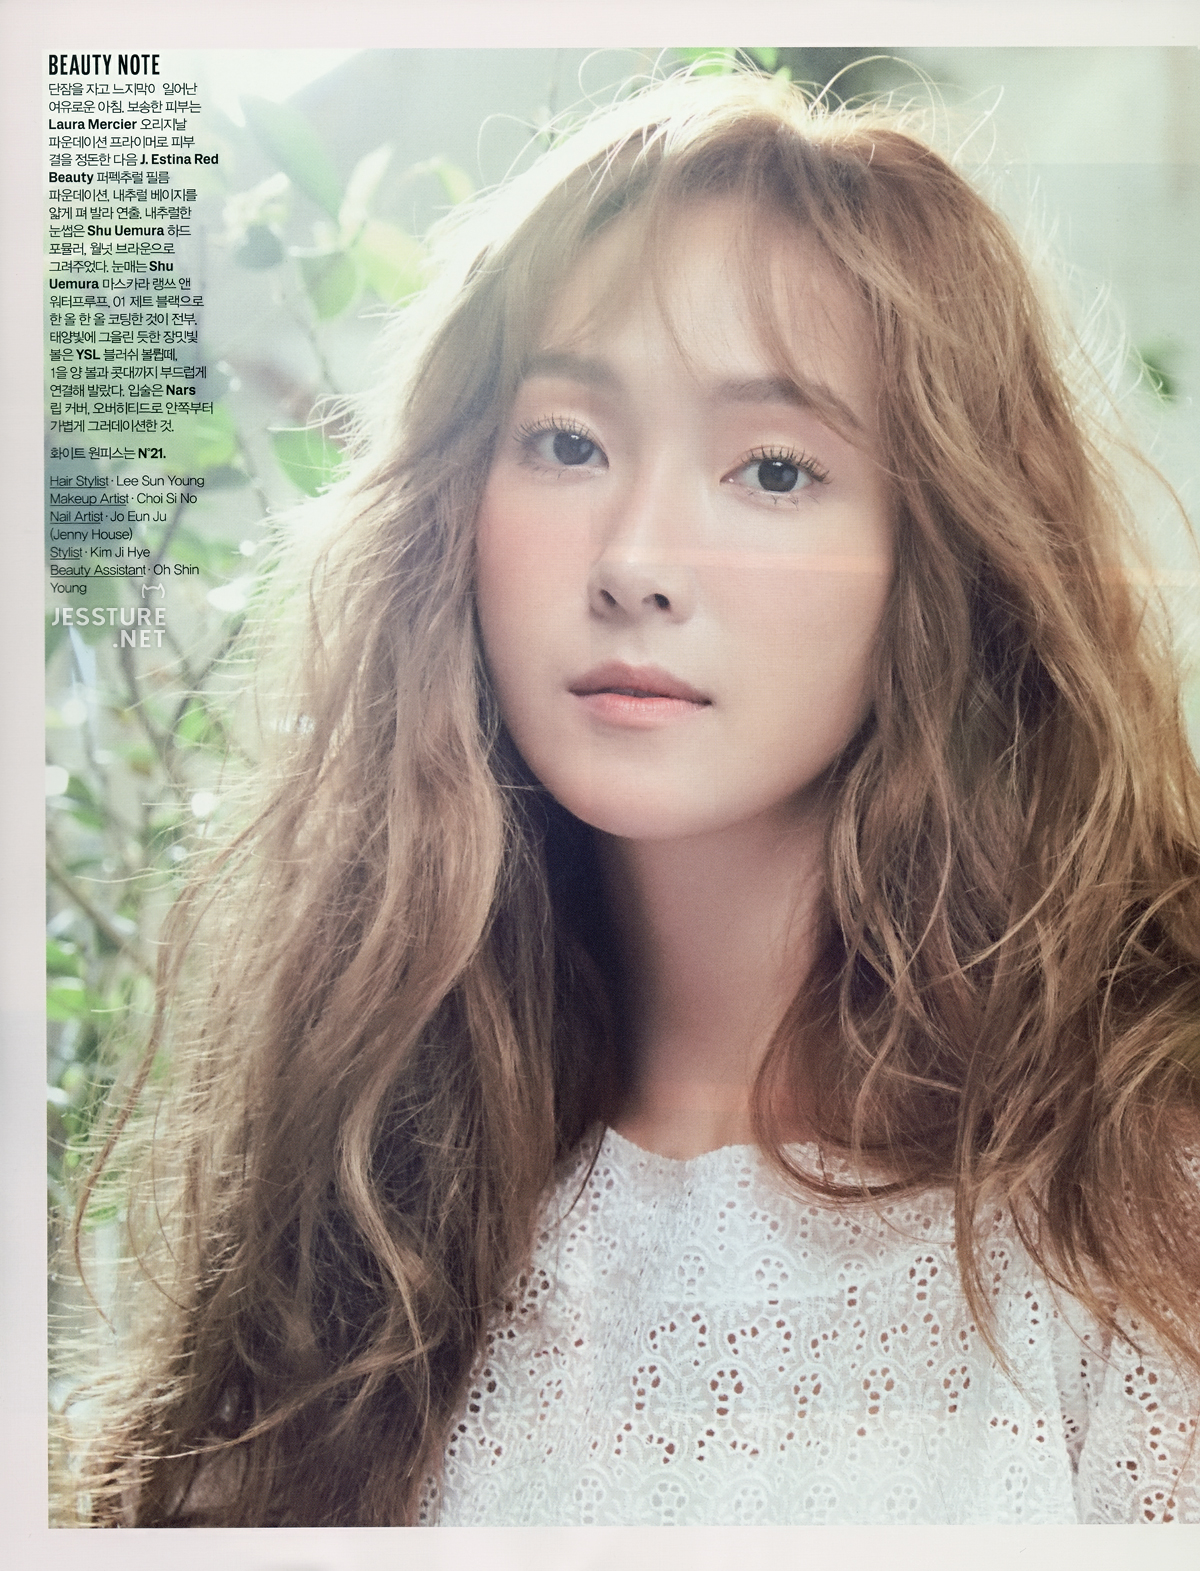 OFFICIAL JESSICA JUNG THREAD Golden